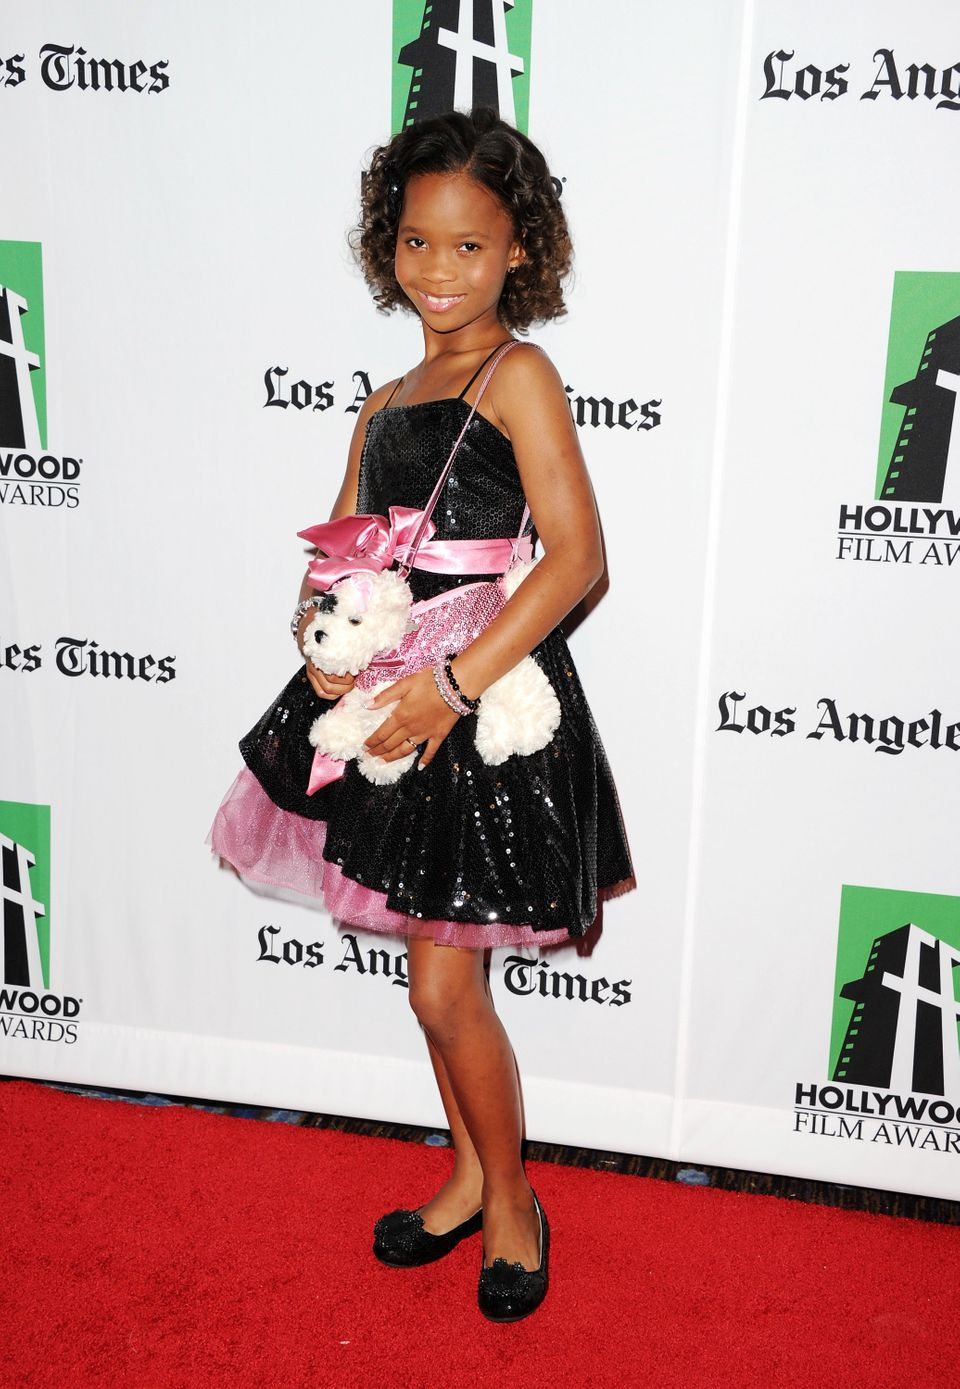 BEVERLY HILLS, CA - OCTOBER 22:  Actress Quvenzhané Wallis arrives at the 16th Annual Hollywood Film Awards Gala presented by